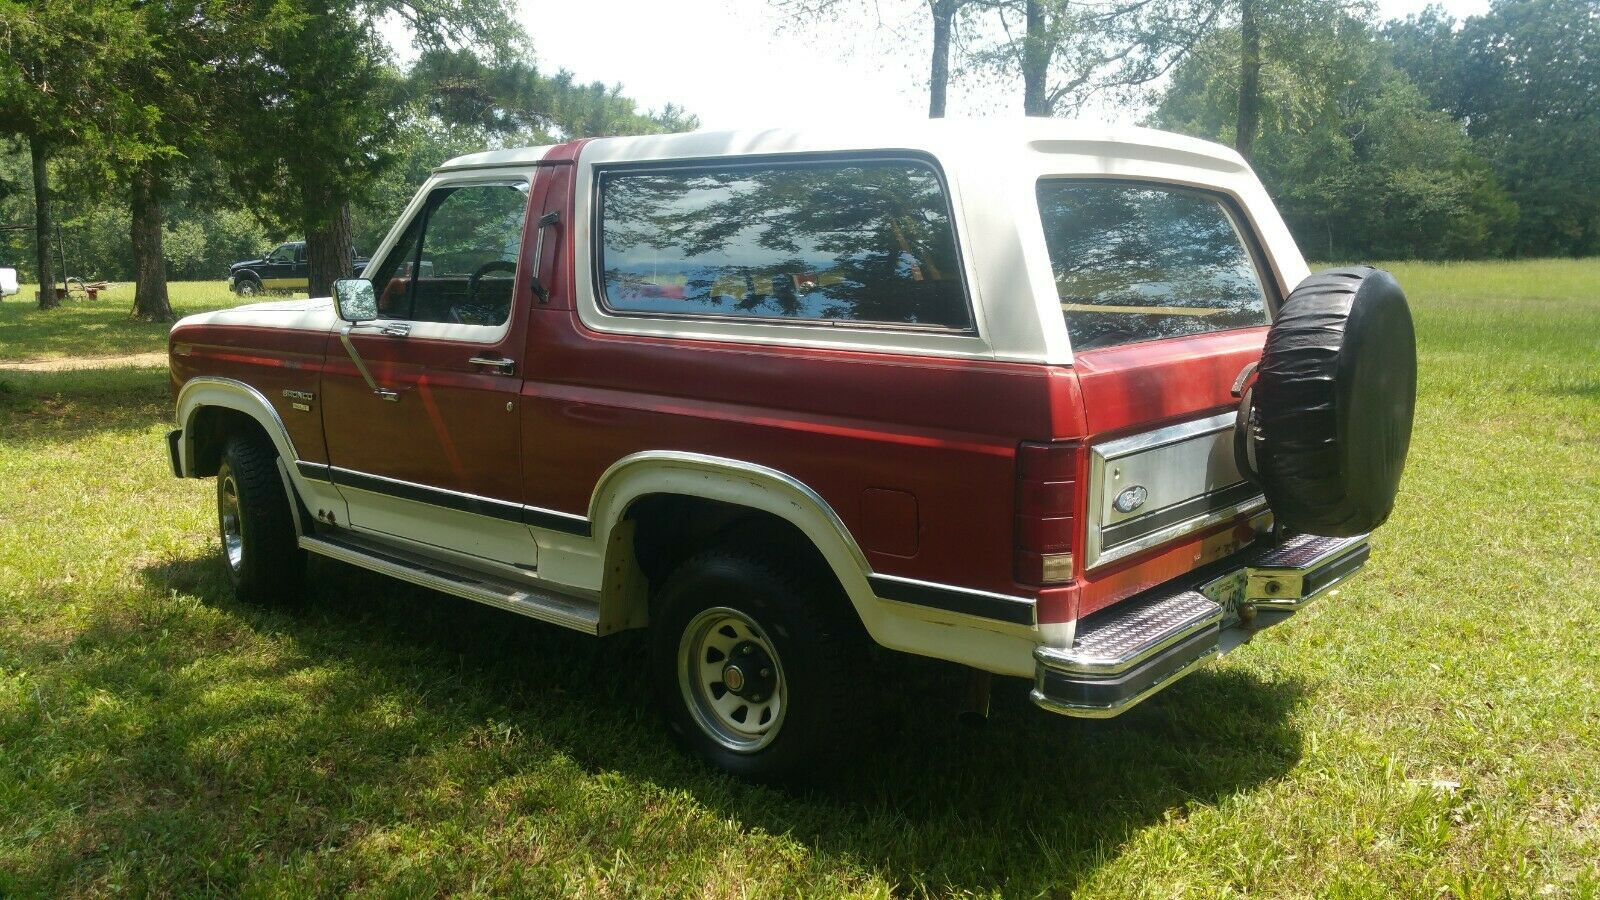 Ford Bronco 1985 4x4 - MBB Collection